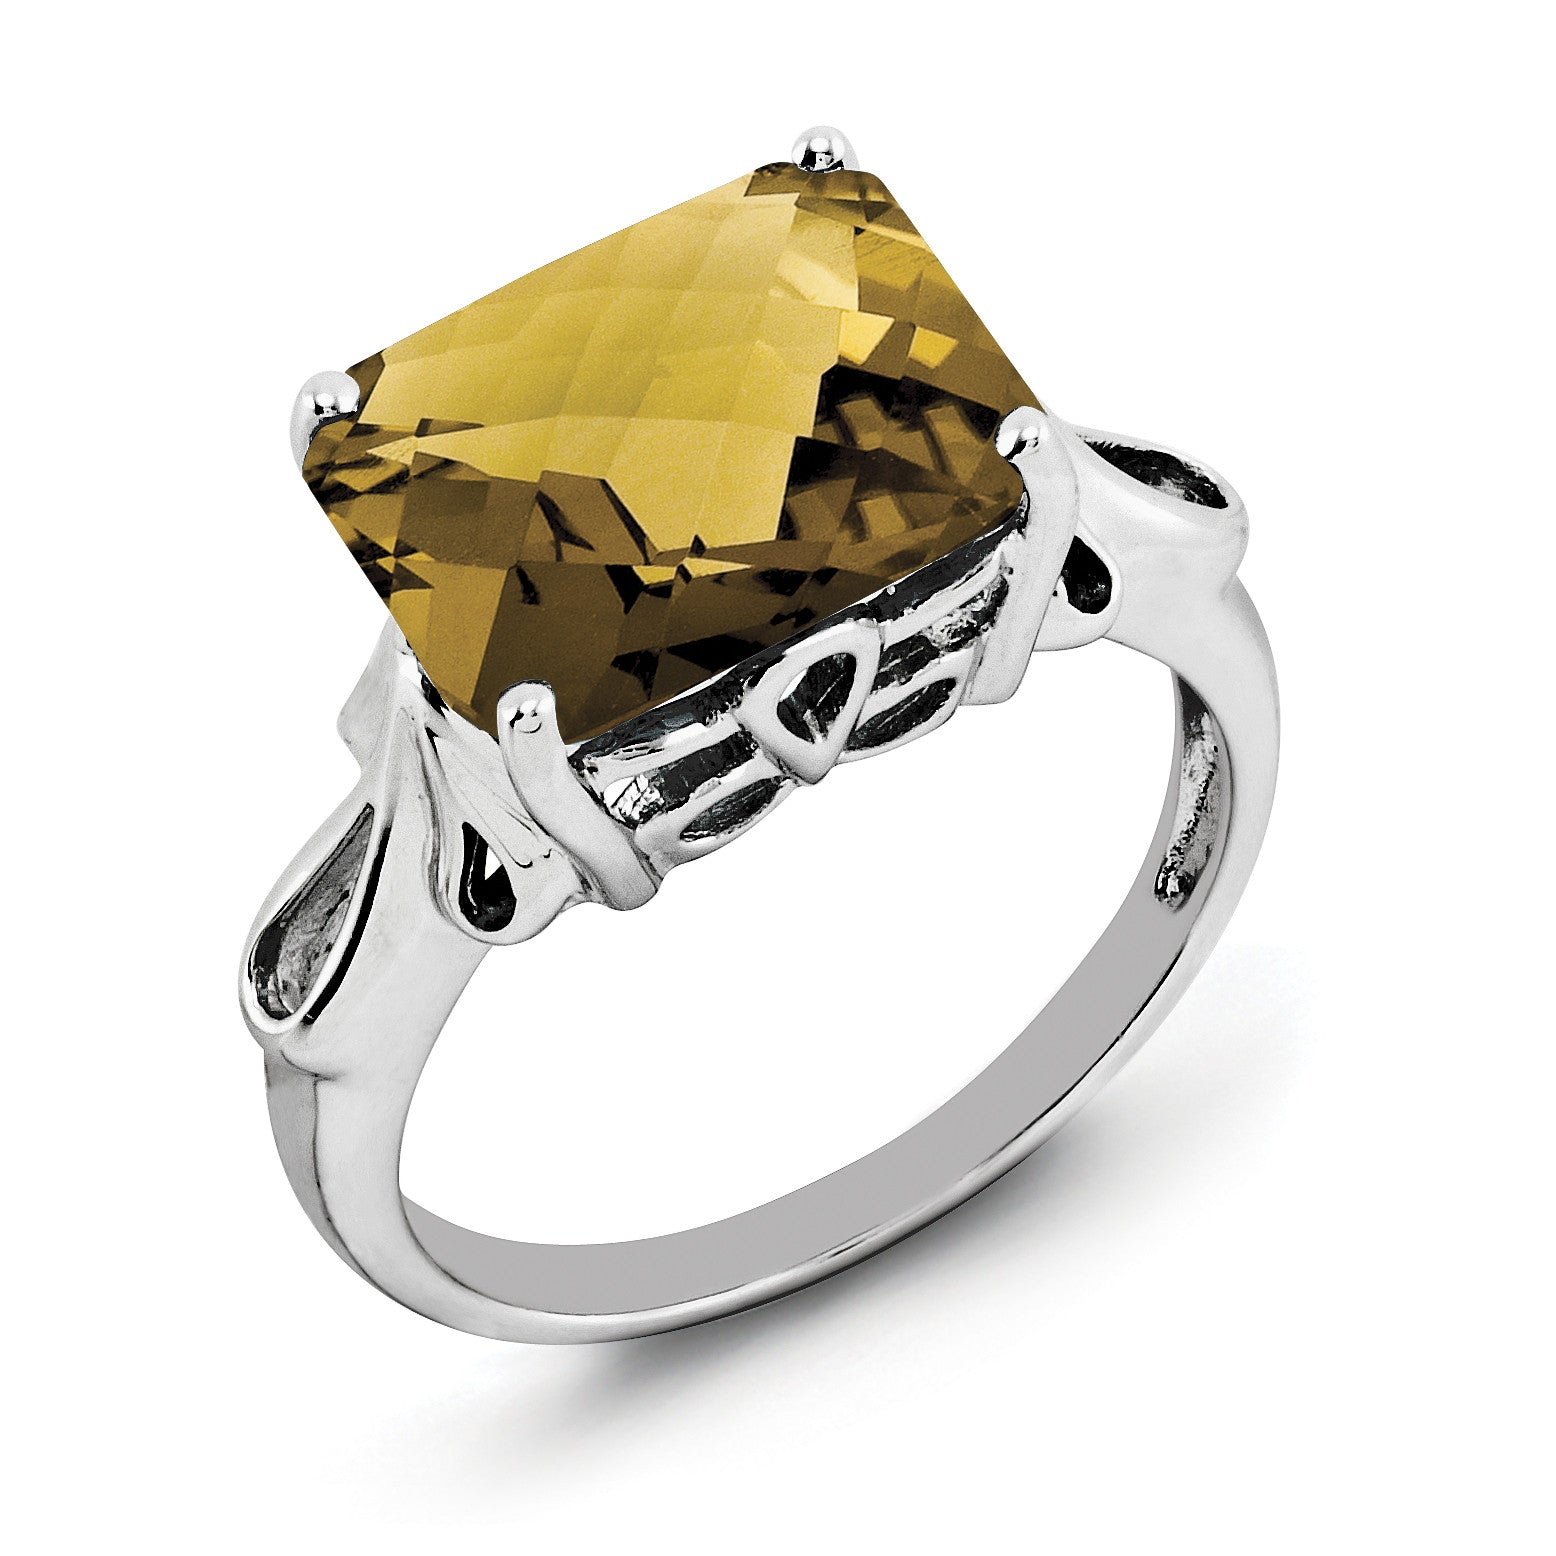 Sterling Silver Rhodium Octagonal Checker-Cut Whiskey Quartz Ring QR2958WQ - shirin-diamonds